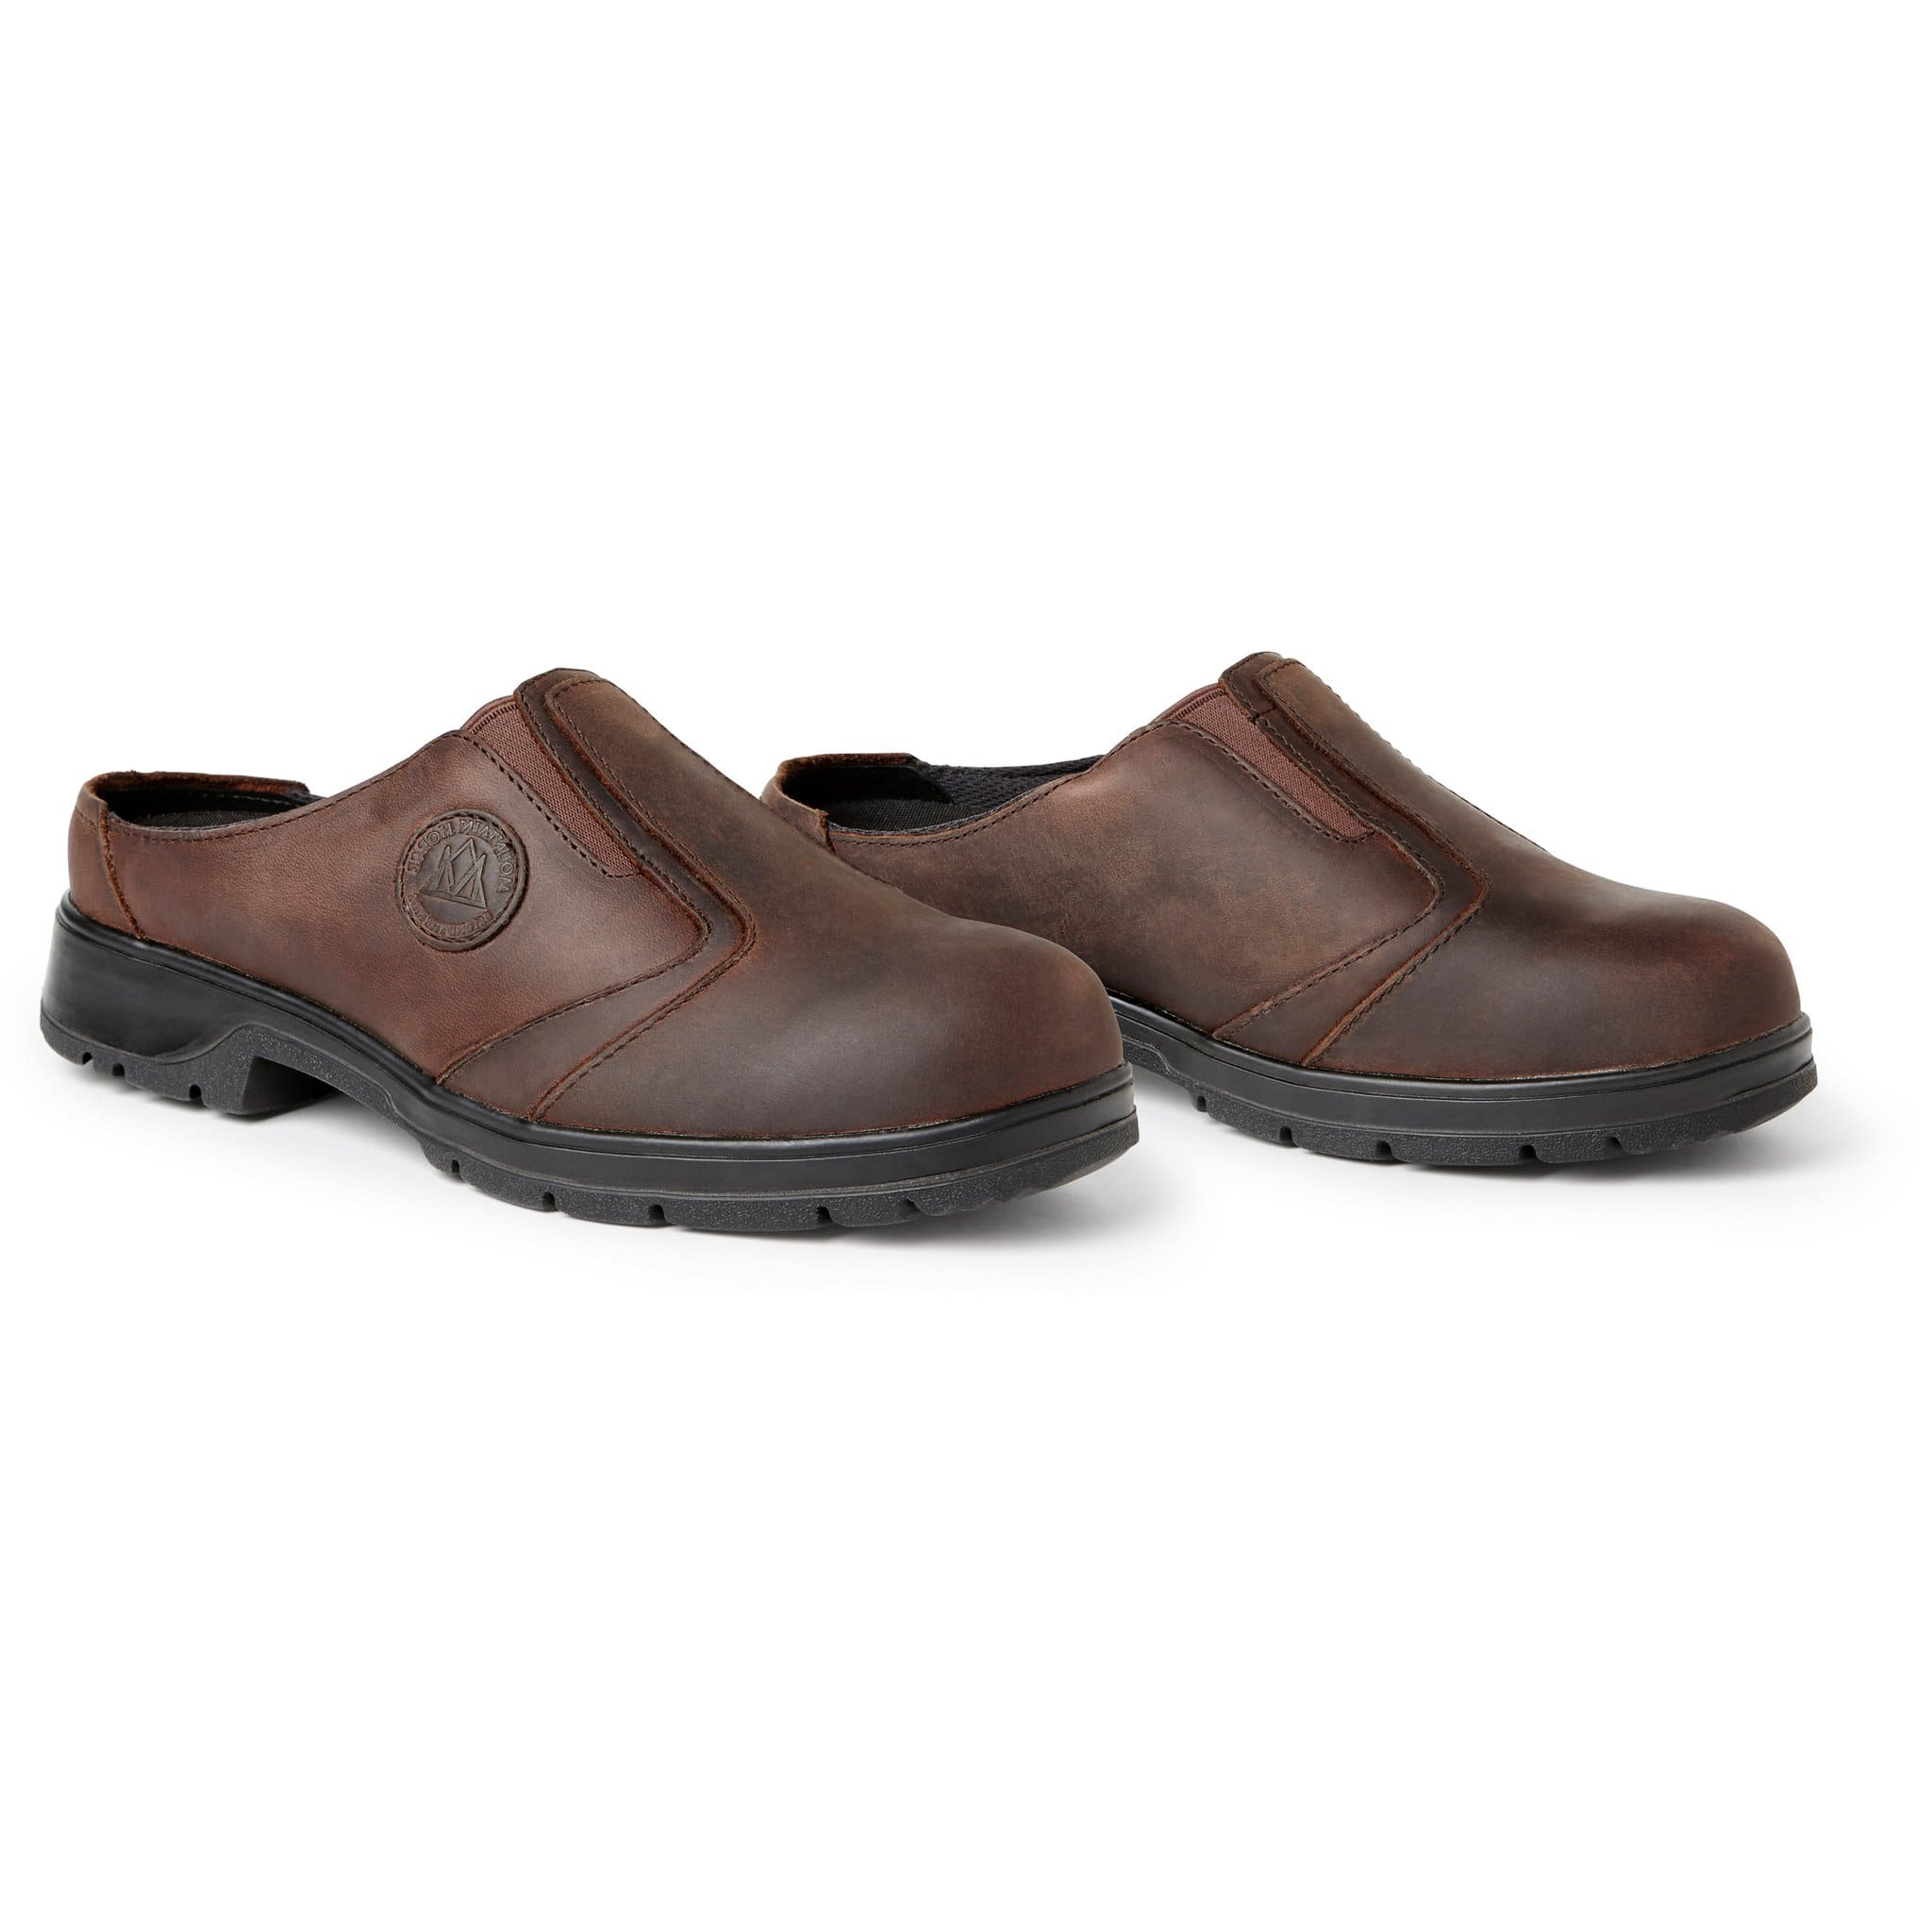 Mountain Horse Spring River Clogs 01059